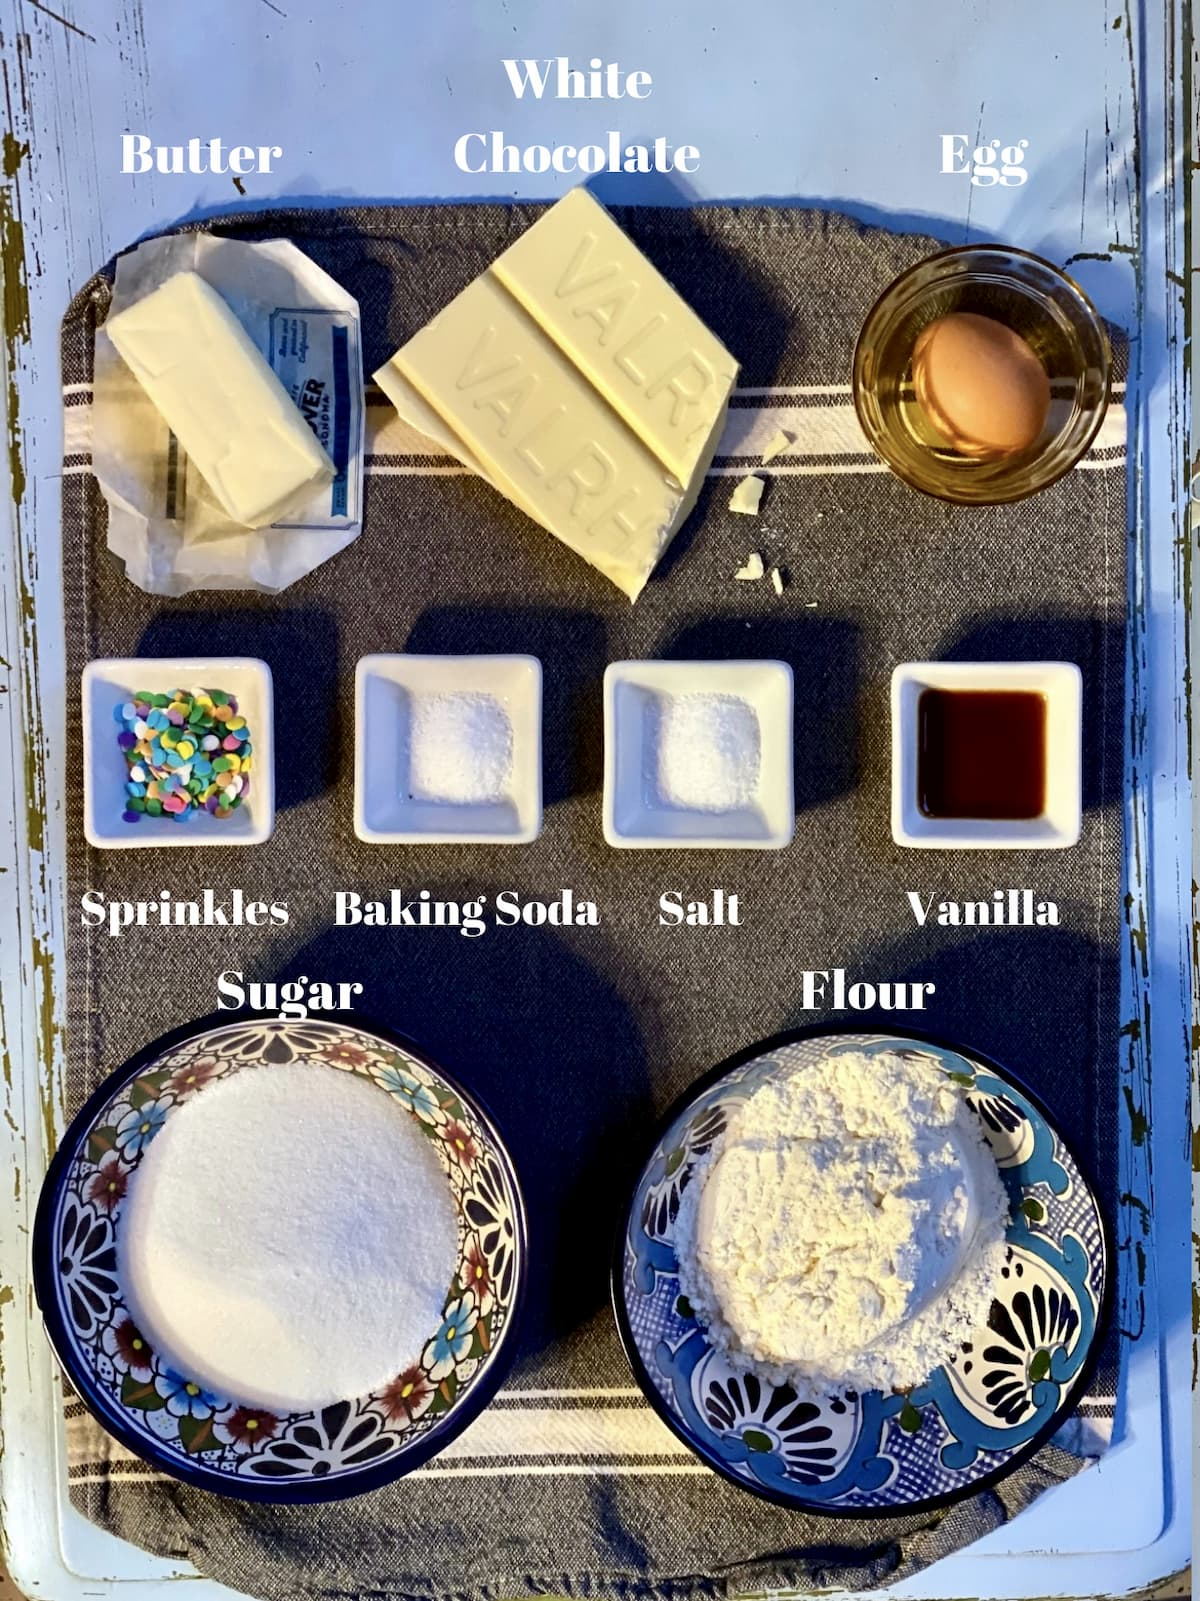 ingredients for white chocolate snowflake cookies, flour, butter, white chocolate, egg, baking powder, salt, vanilla and sprinkles